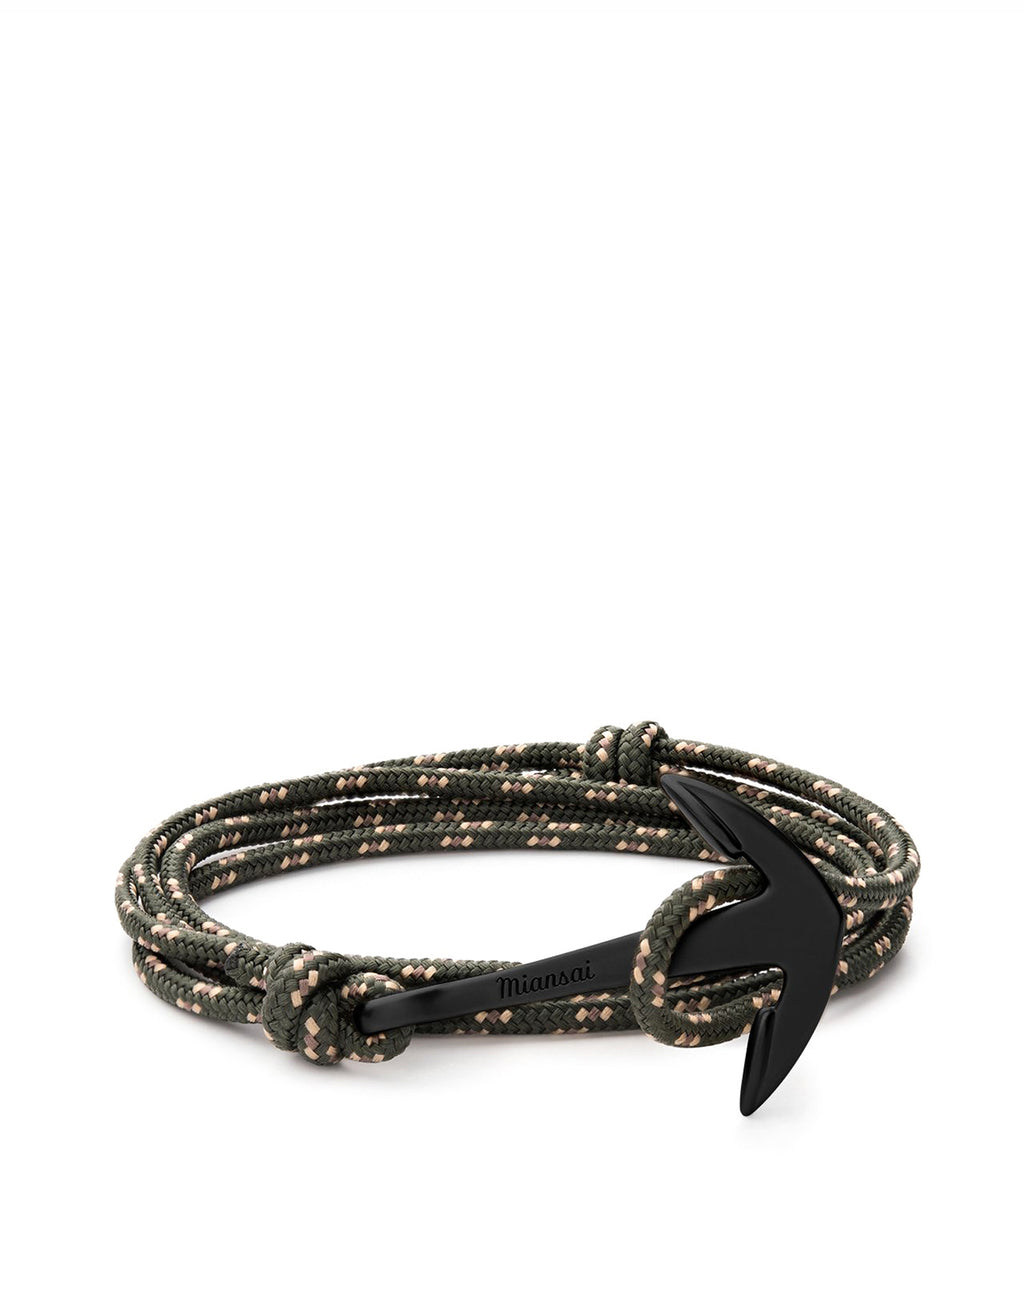 Miansai - Anchor On Rope Bracelet Noir / Hunter Green